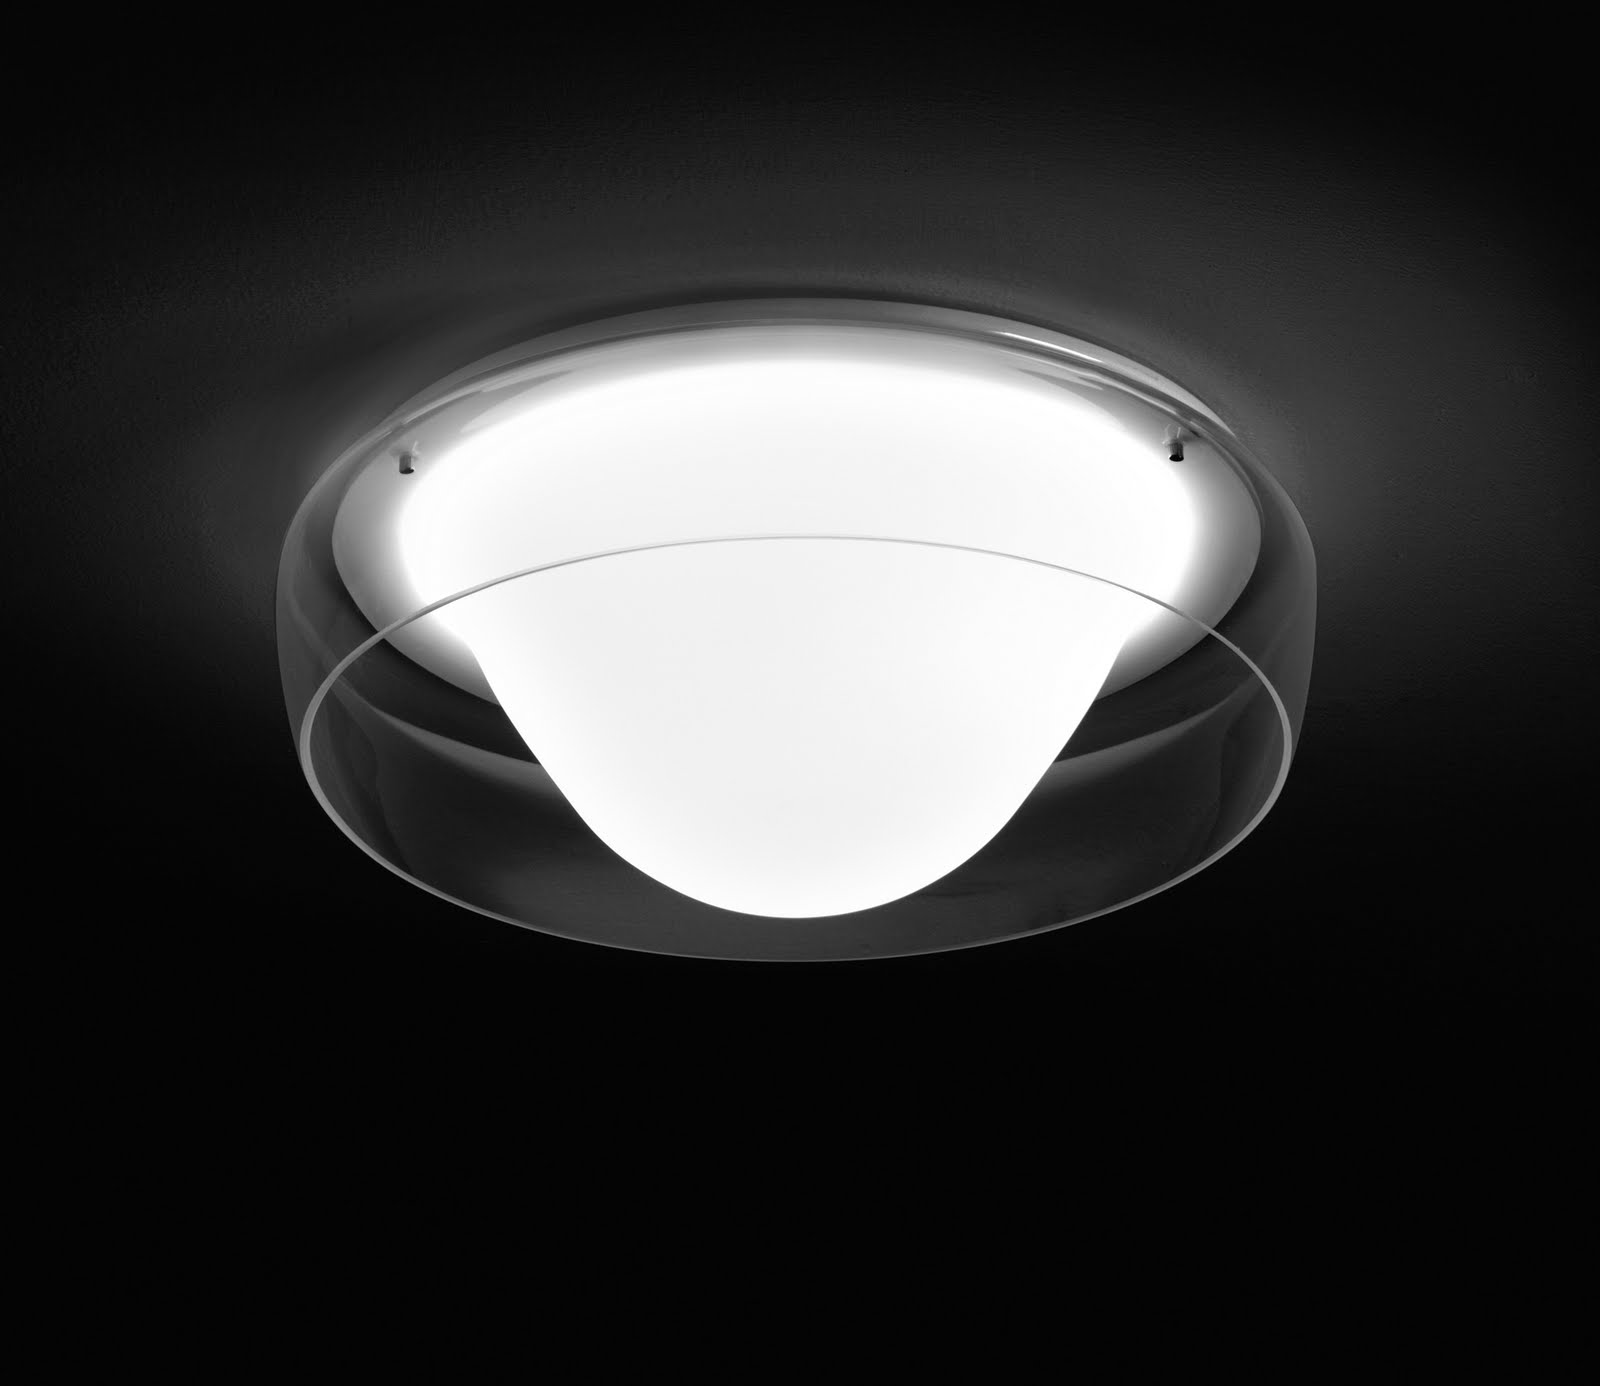 Jellyfish 40 50 60 70 glass wall ceiling light fixture for Jellyfish light fixture